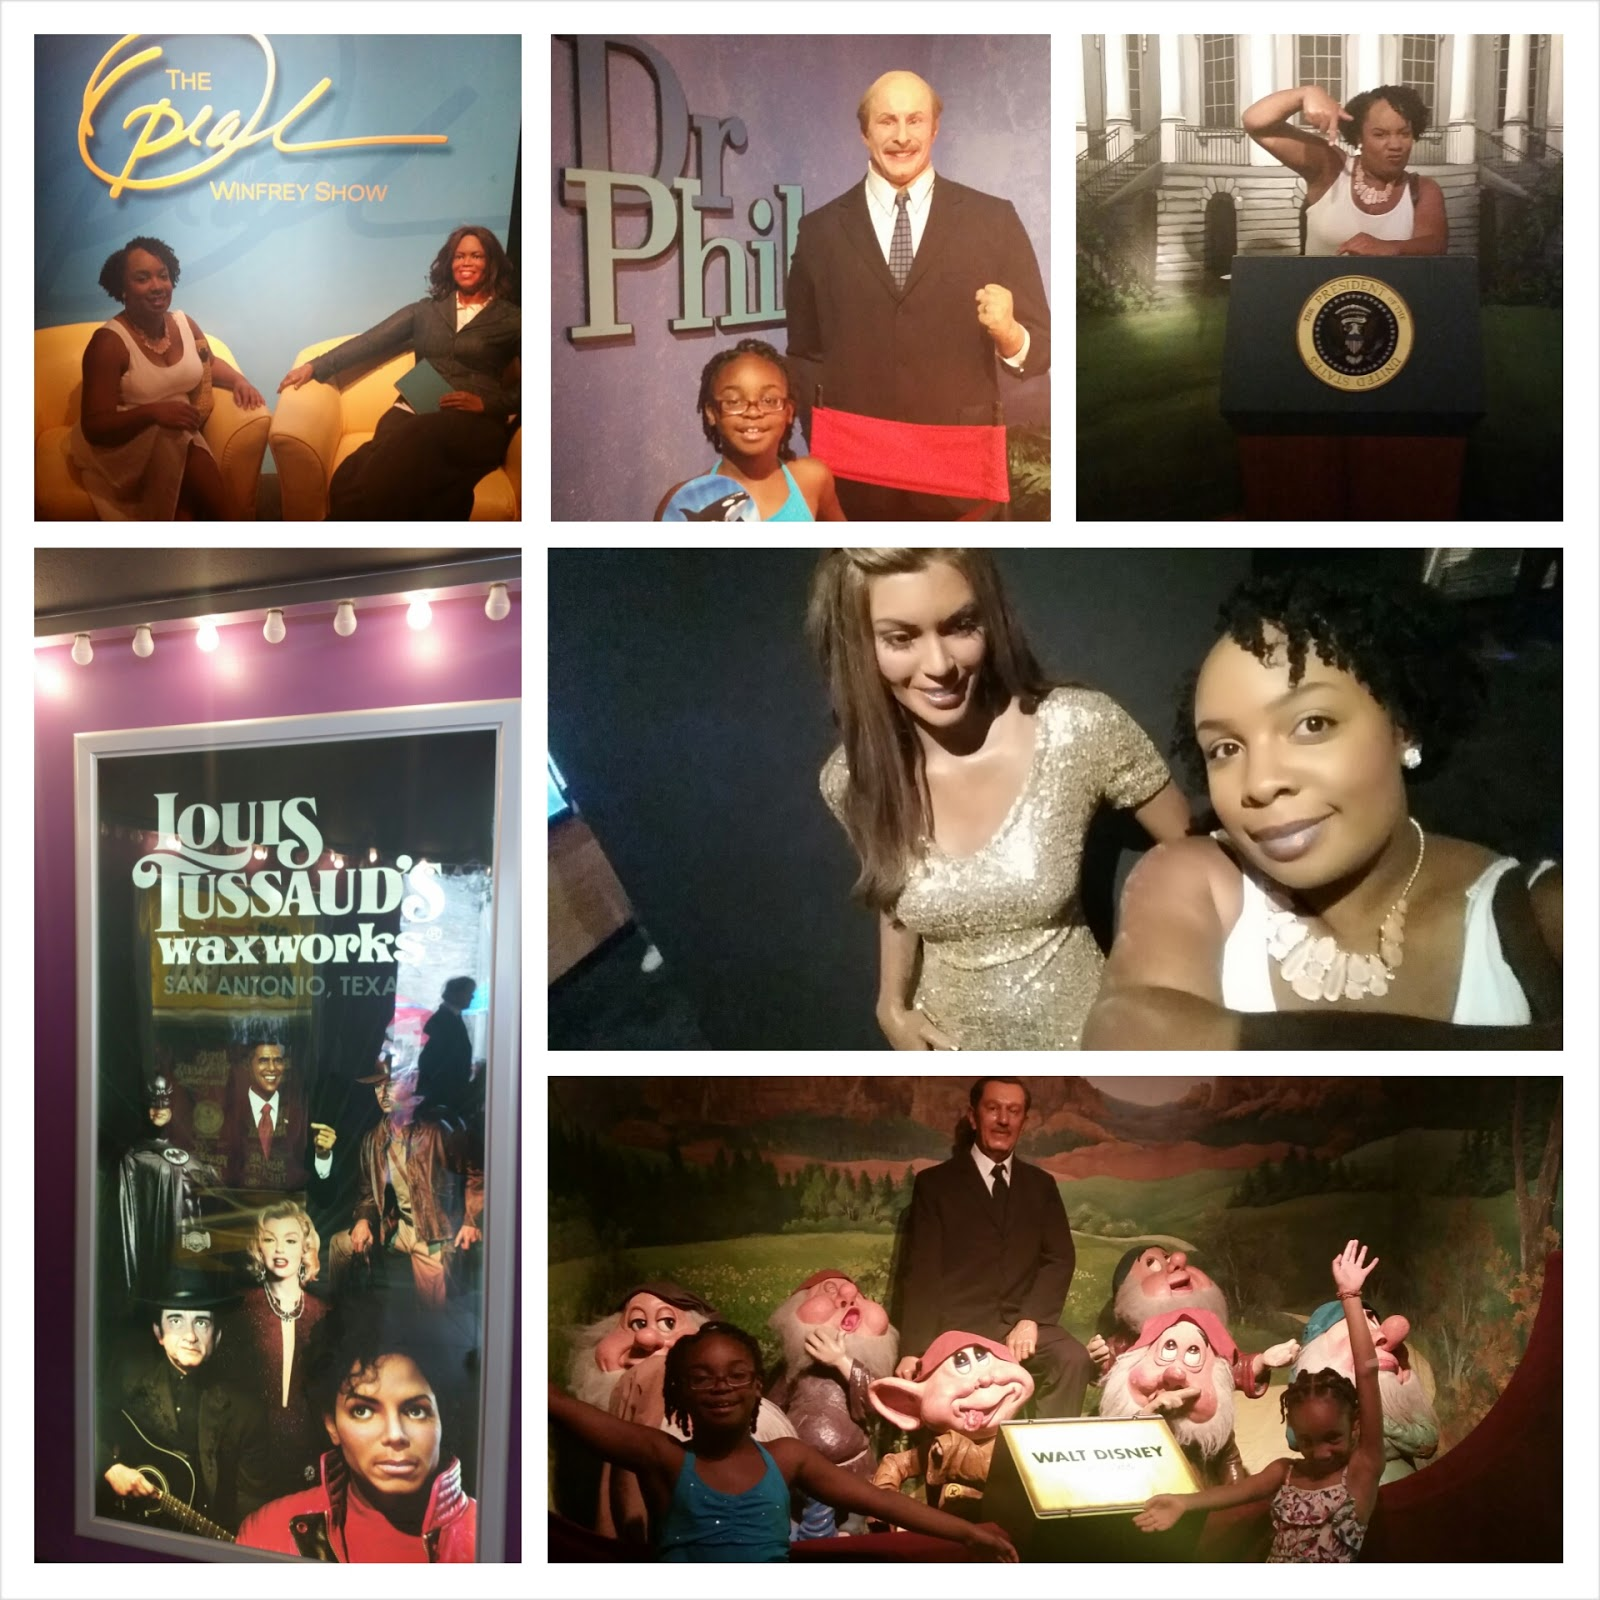 My Epic Family Road Trip Vacation! #RoadTrip #waxwork via ProductReviewMom.com